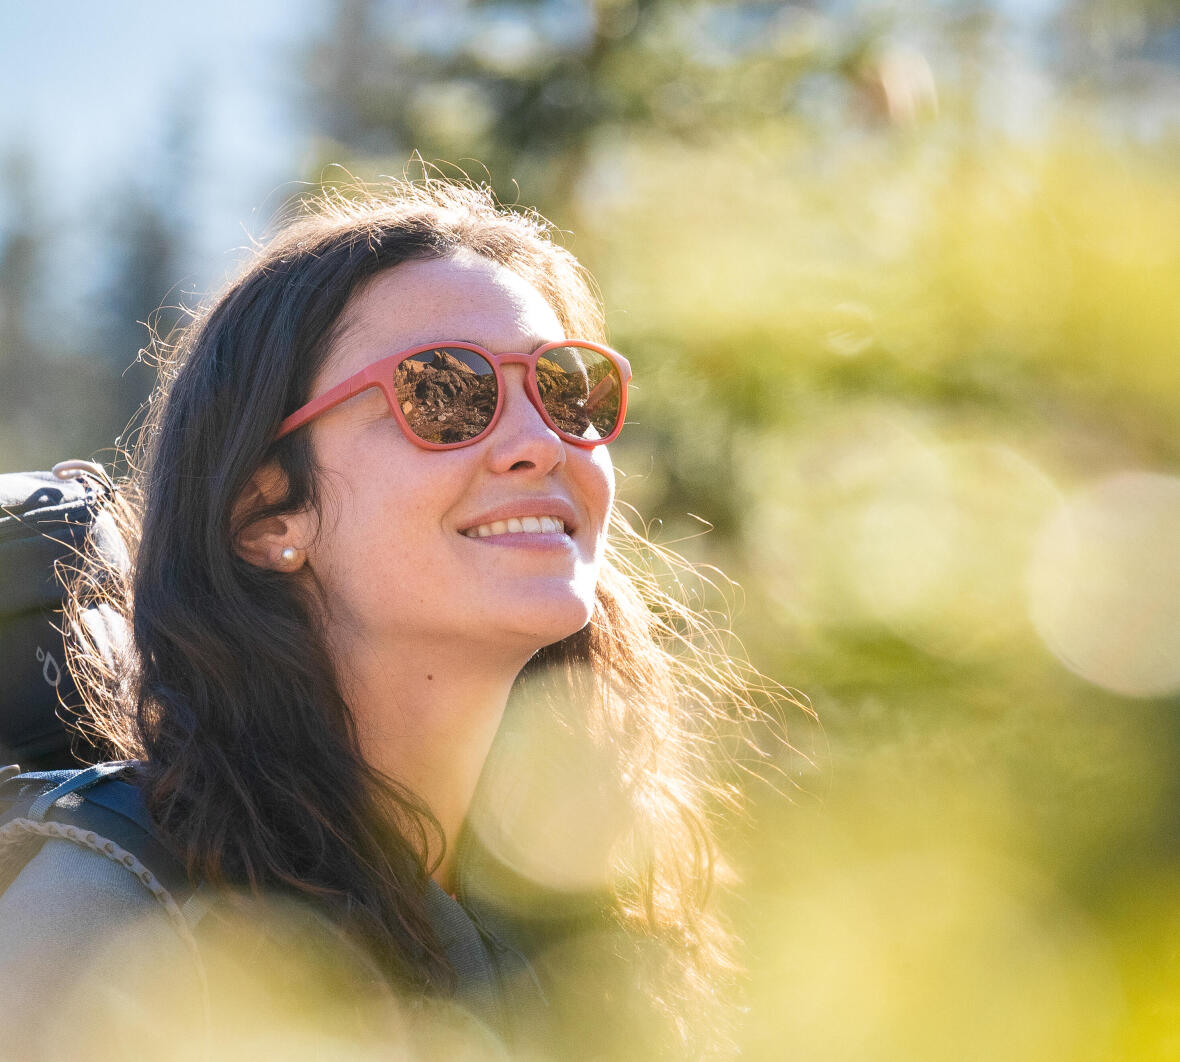 HOW TO CHOOSE YOUR HIKING SUNGLASSES?